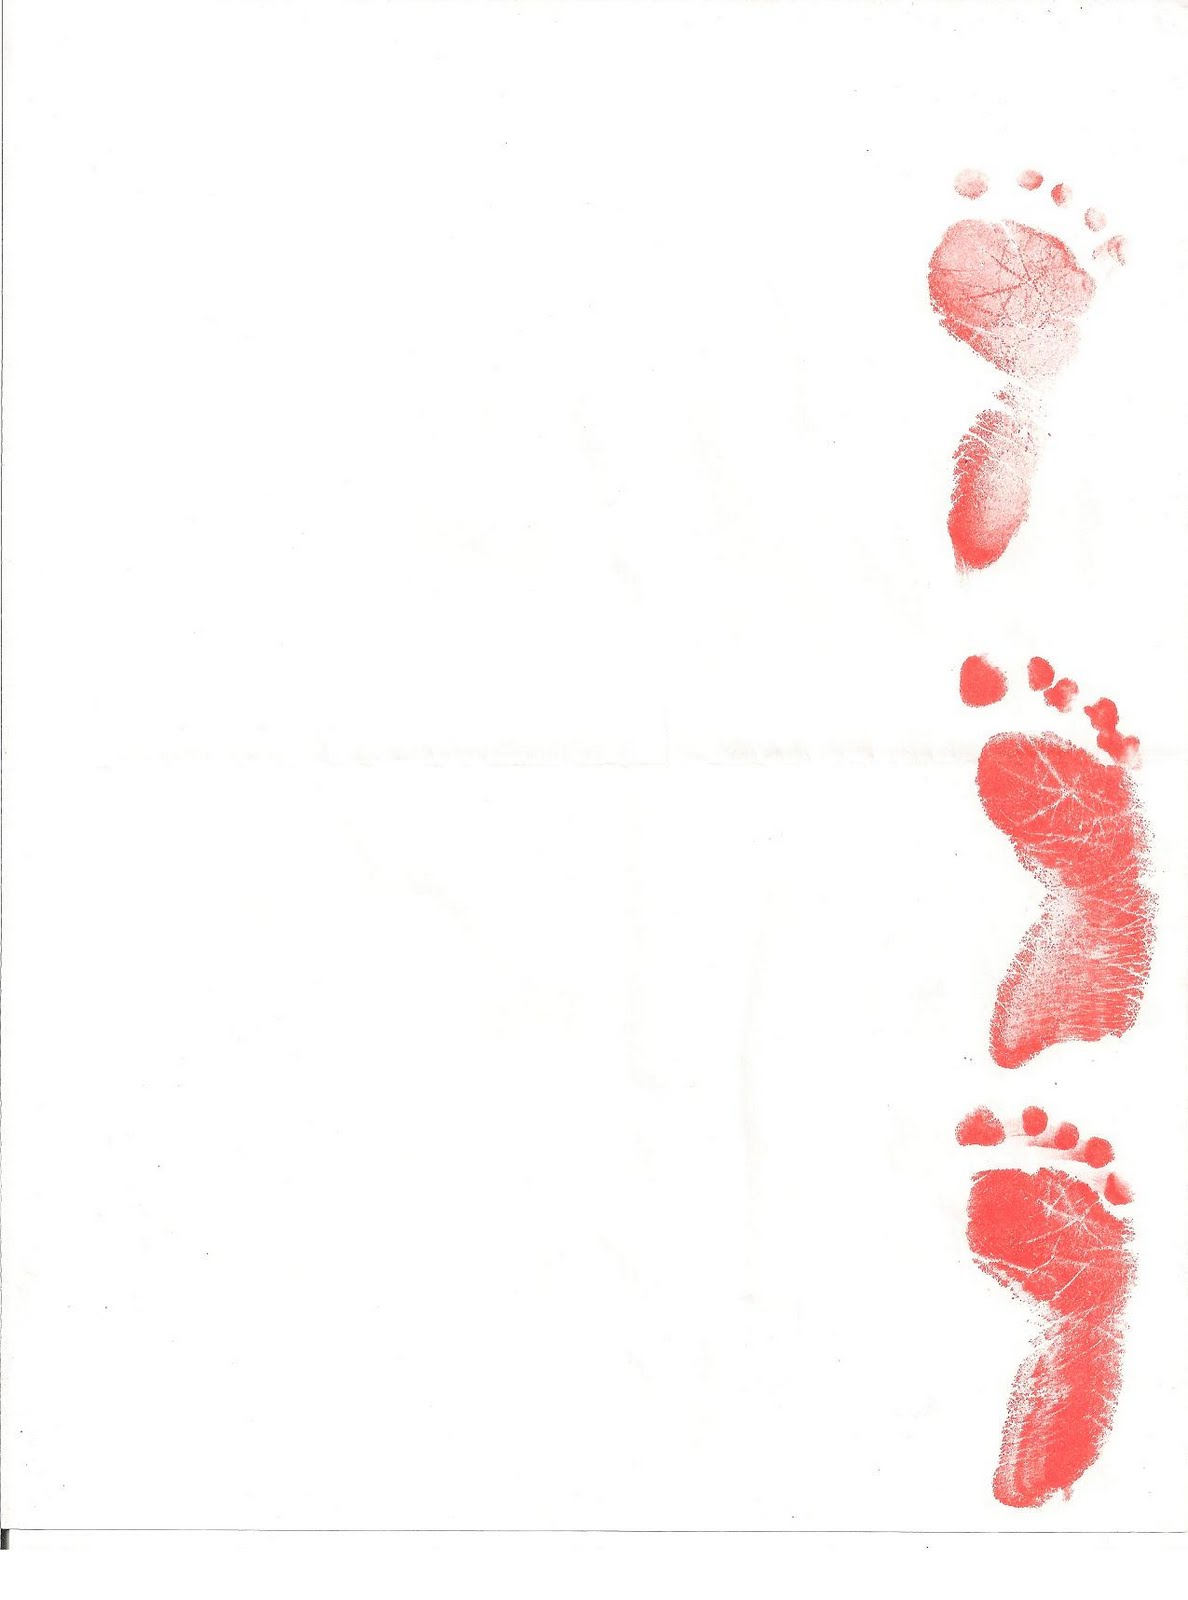 Baby Footprints Background Baby footprints 1188x1600